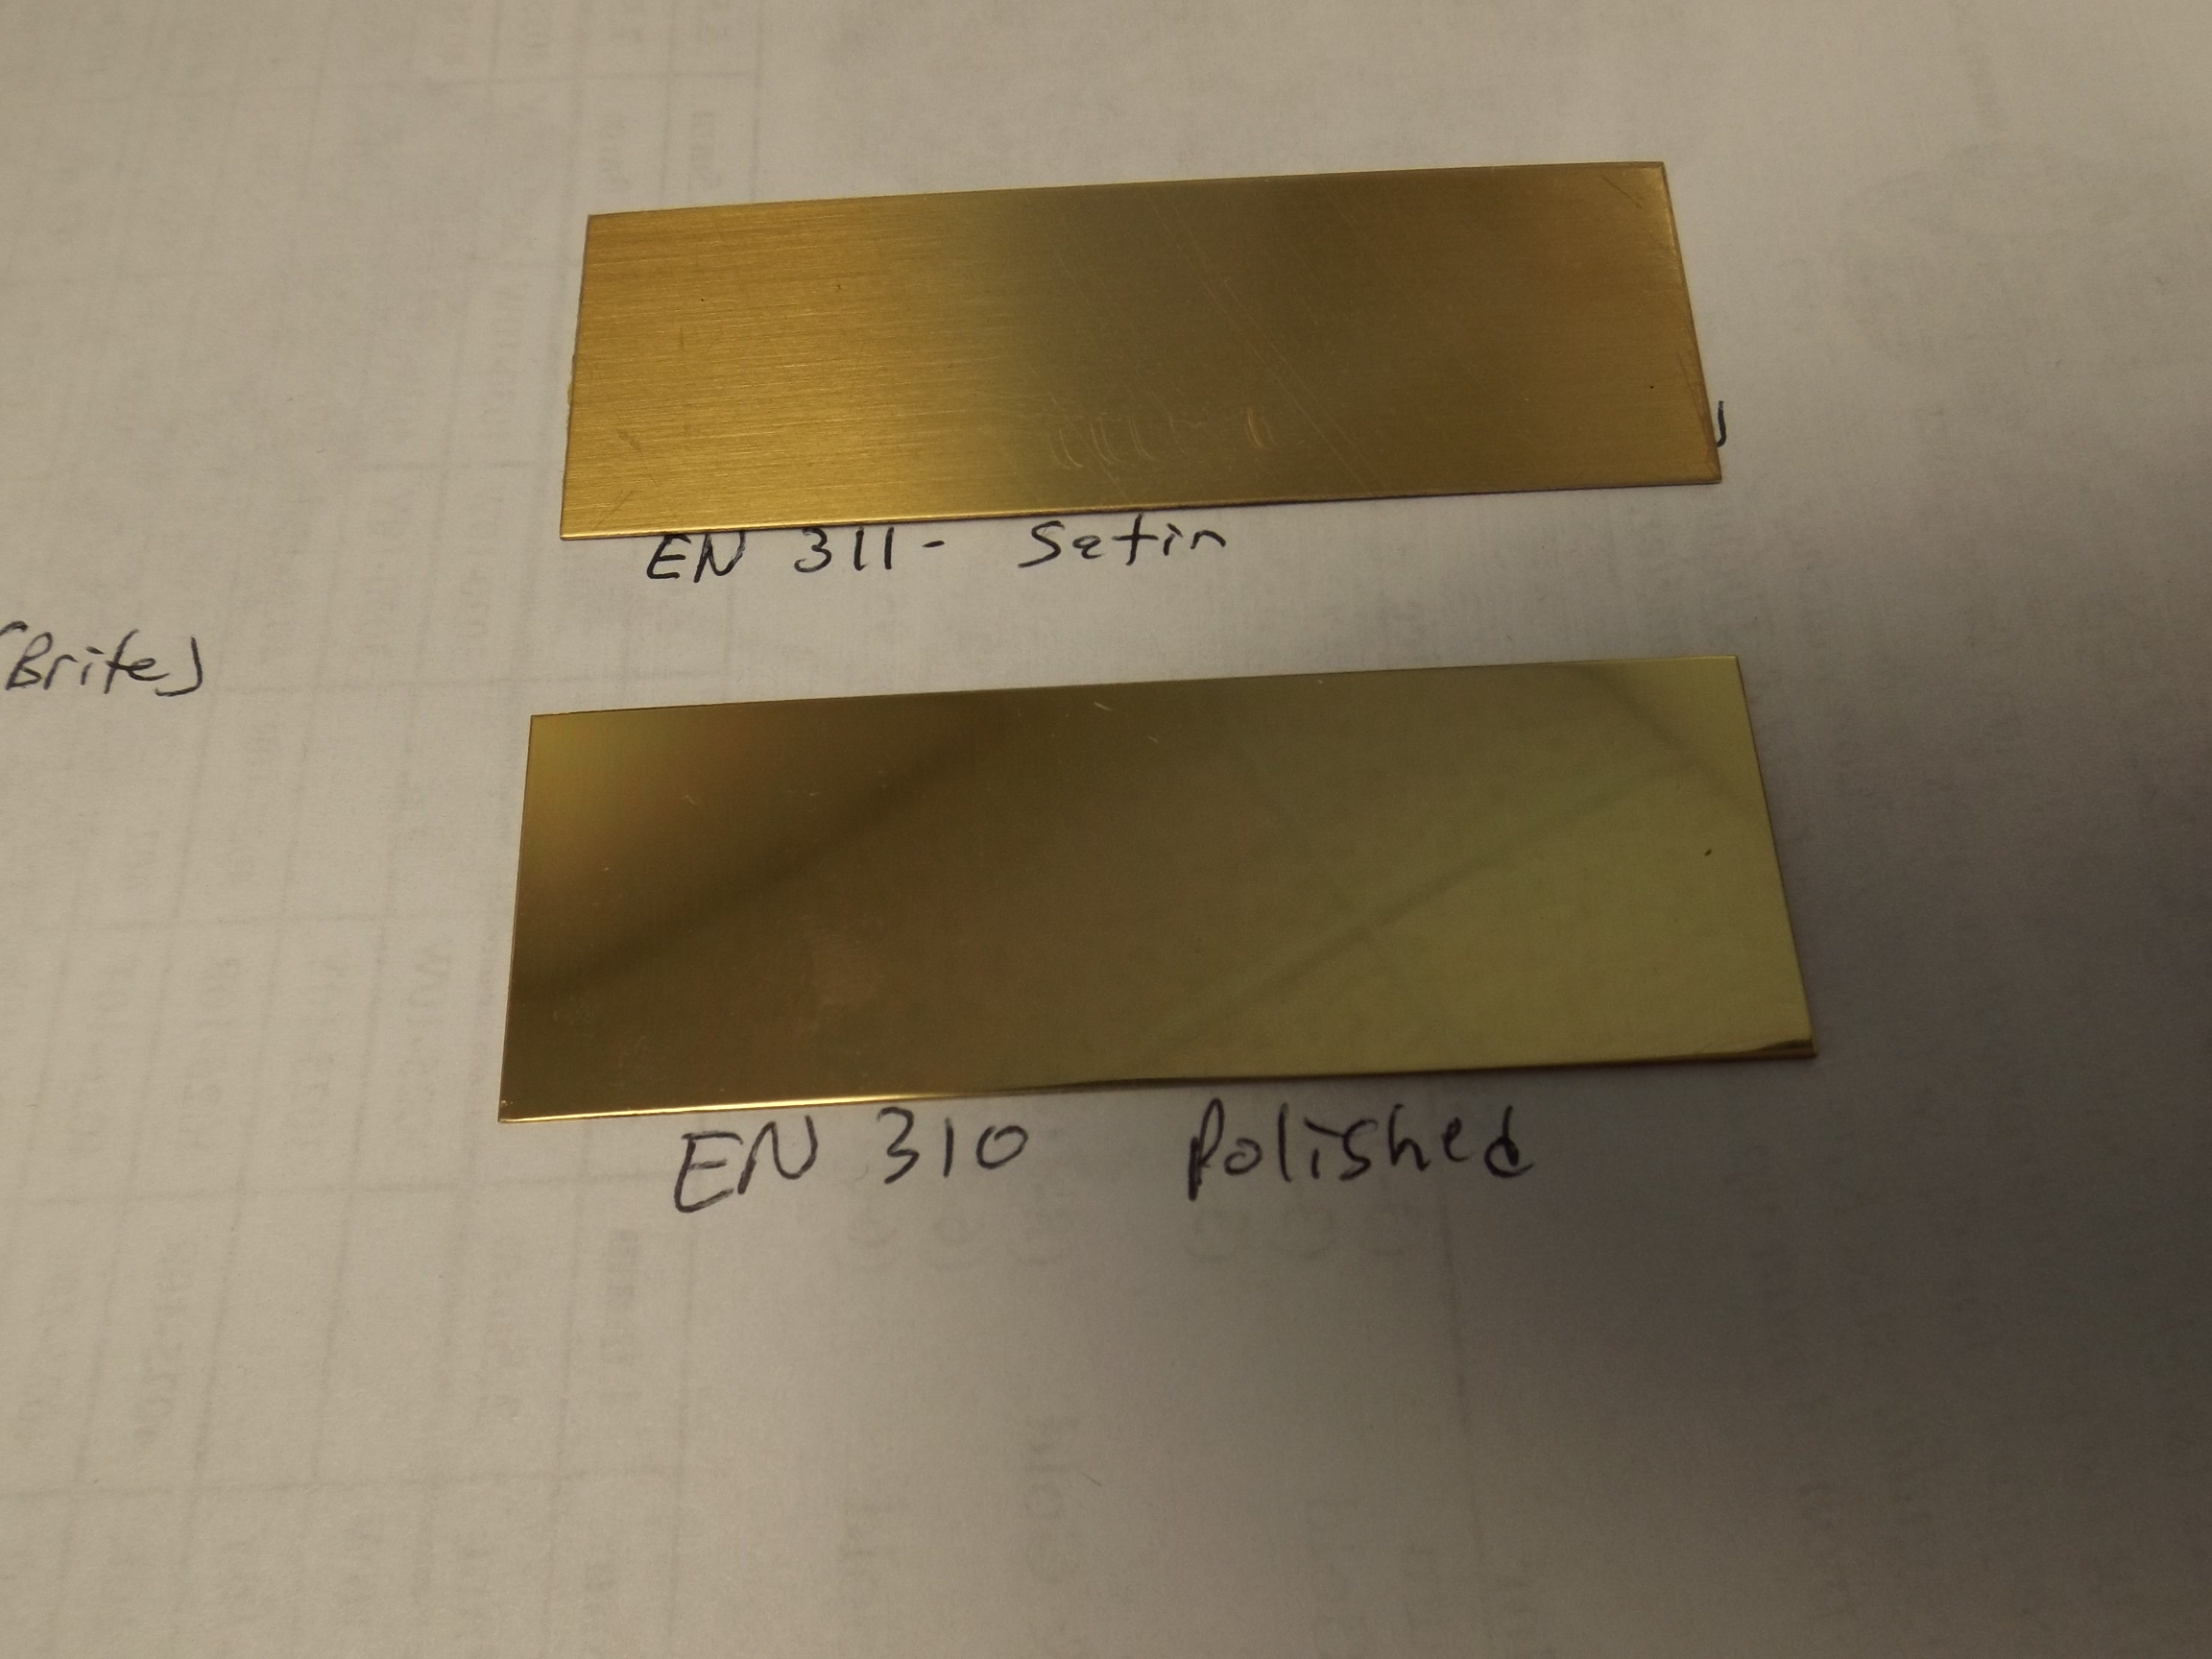 "EN310 Engraving/Trophy Plates-Brass 3"" x 1"" Polished (brite) Finish"